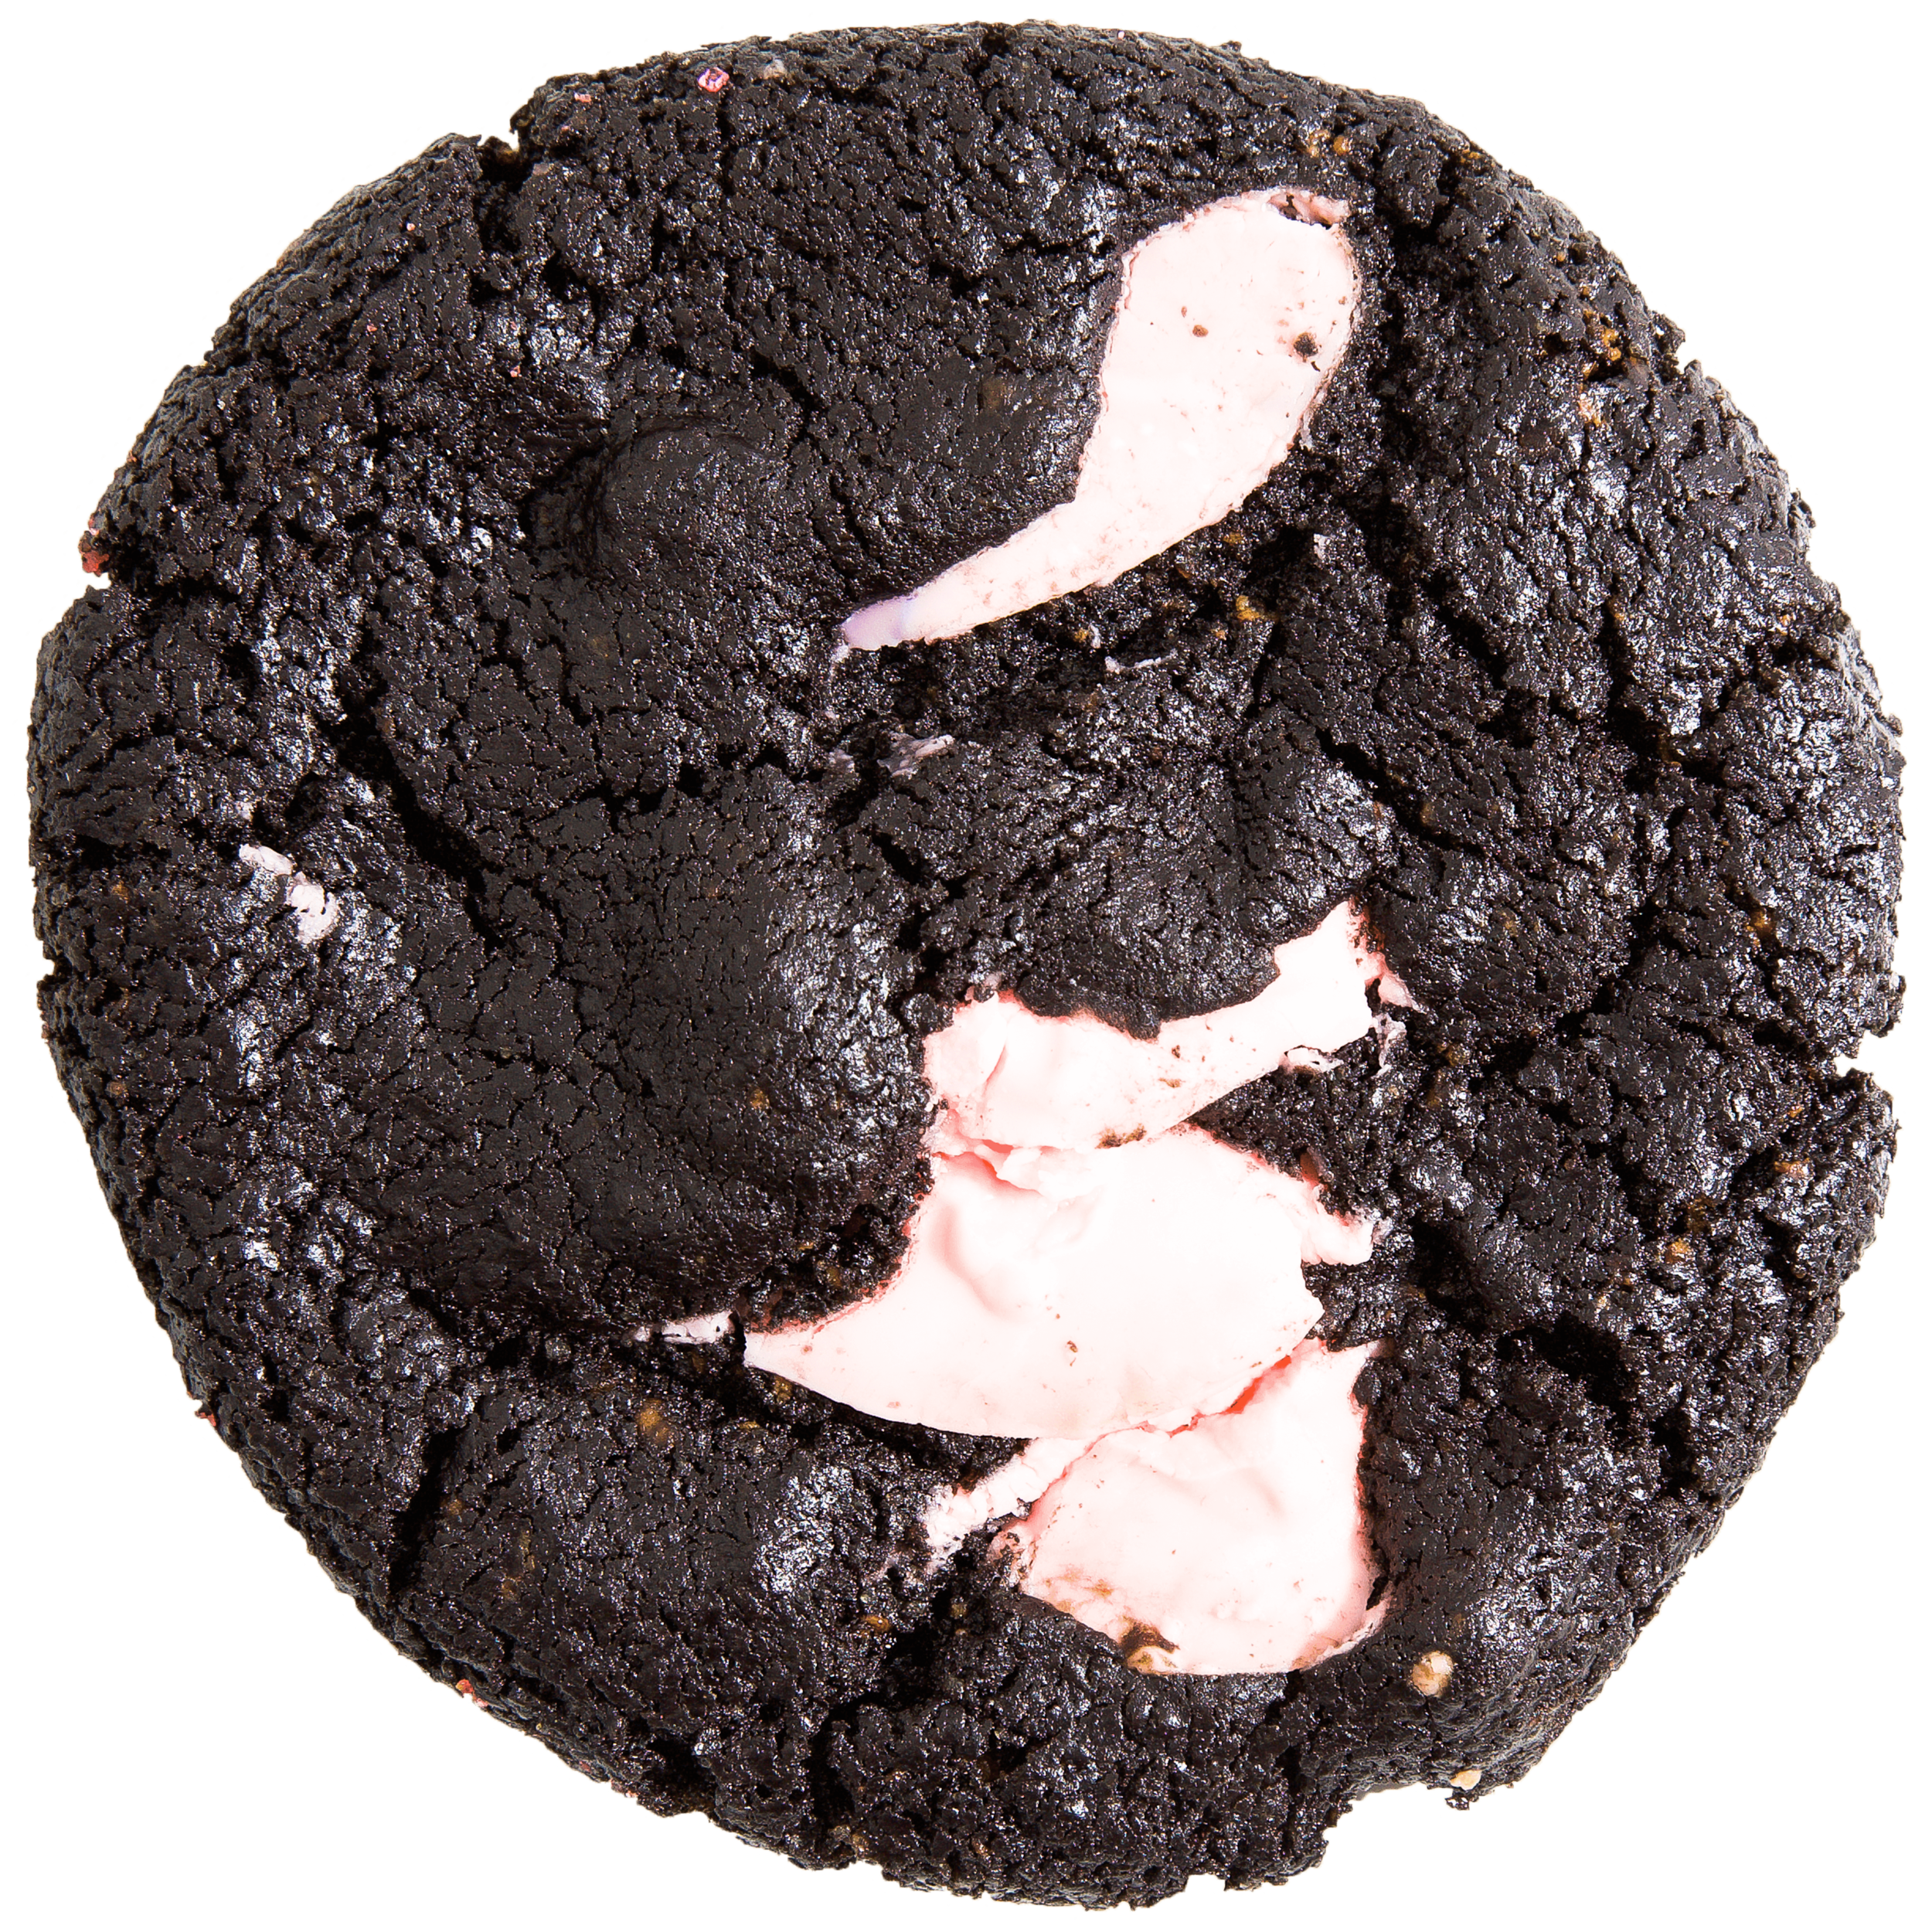 Cookie flavor 16 transparent.png